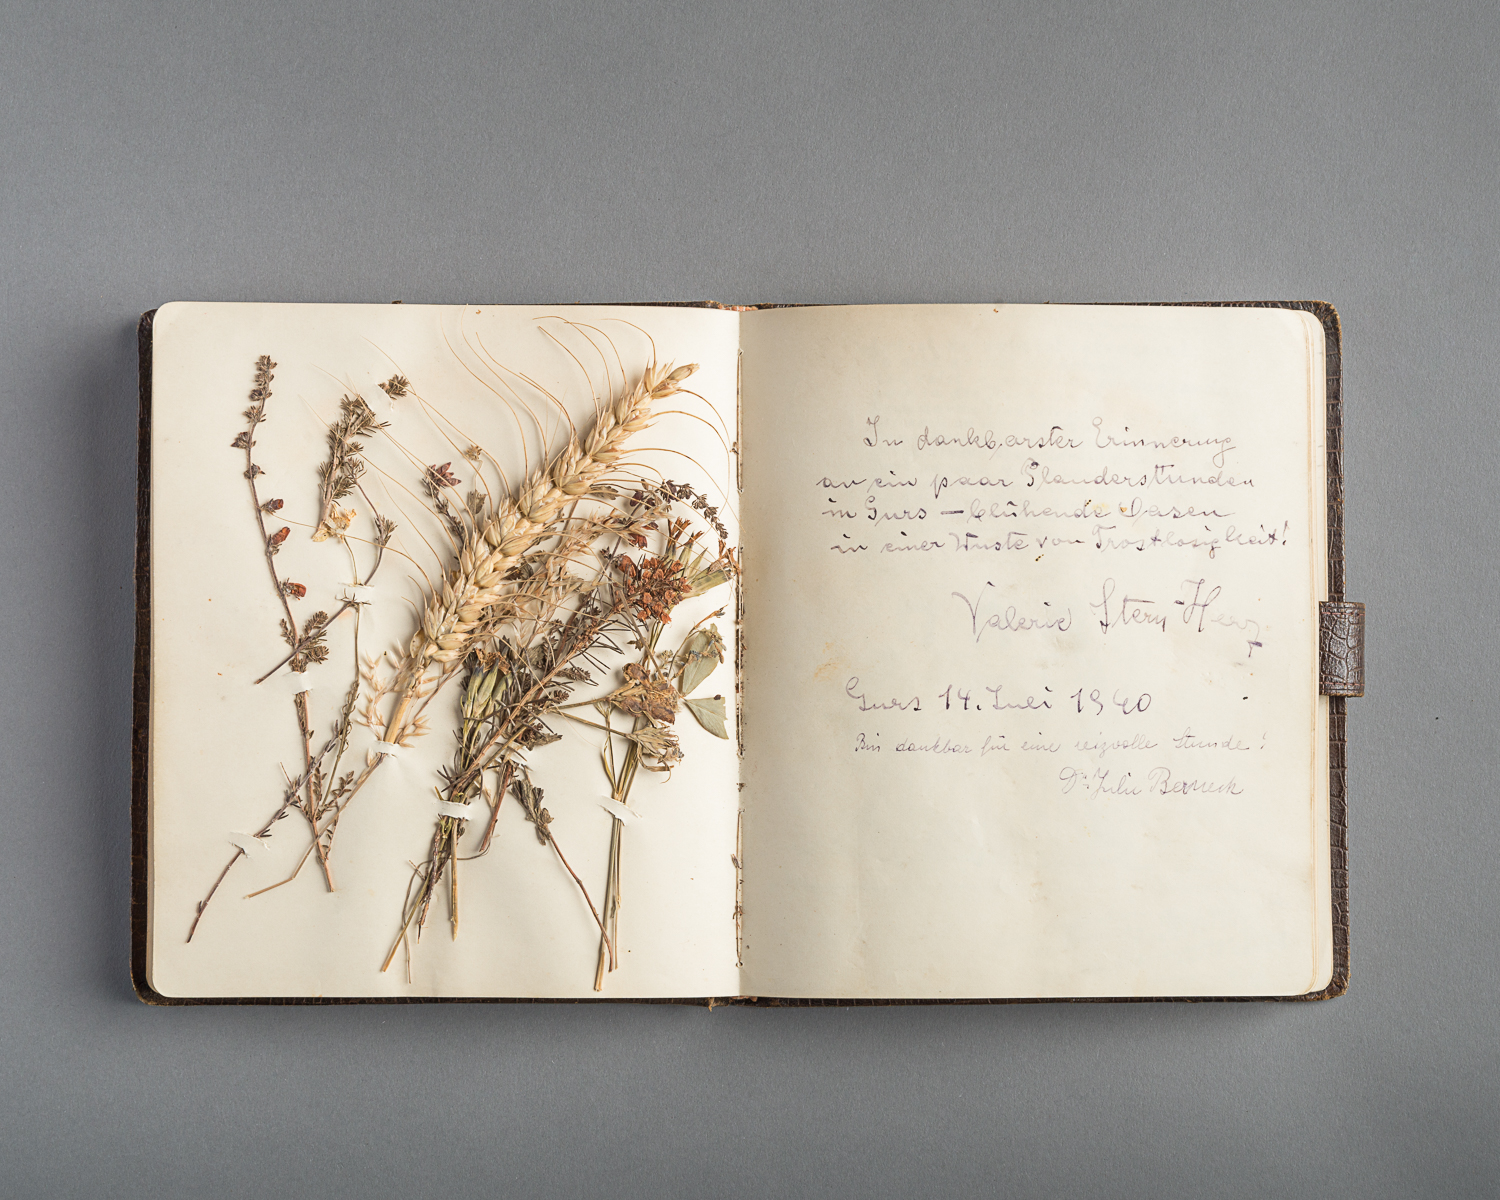 One of its pages is decoreated with dry flowers. (Photo: Peter Berra)